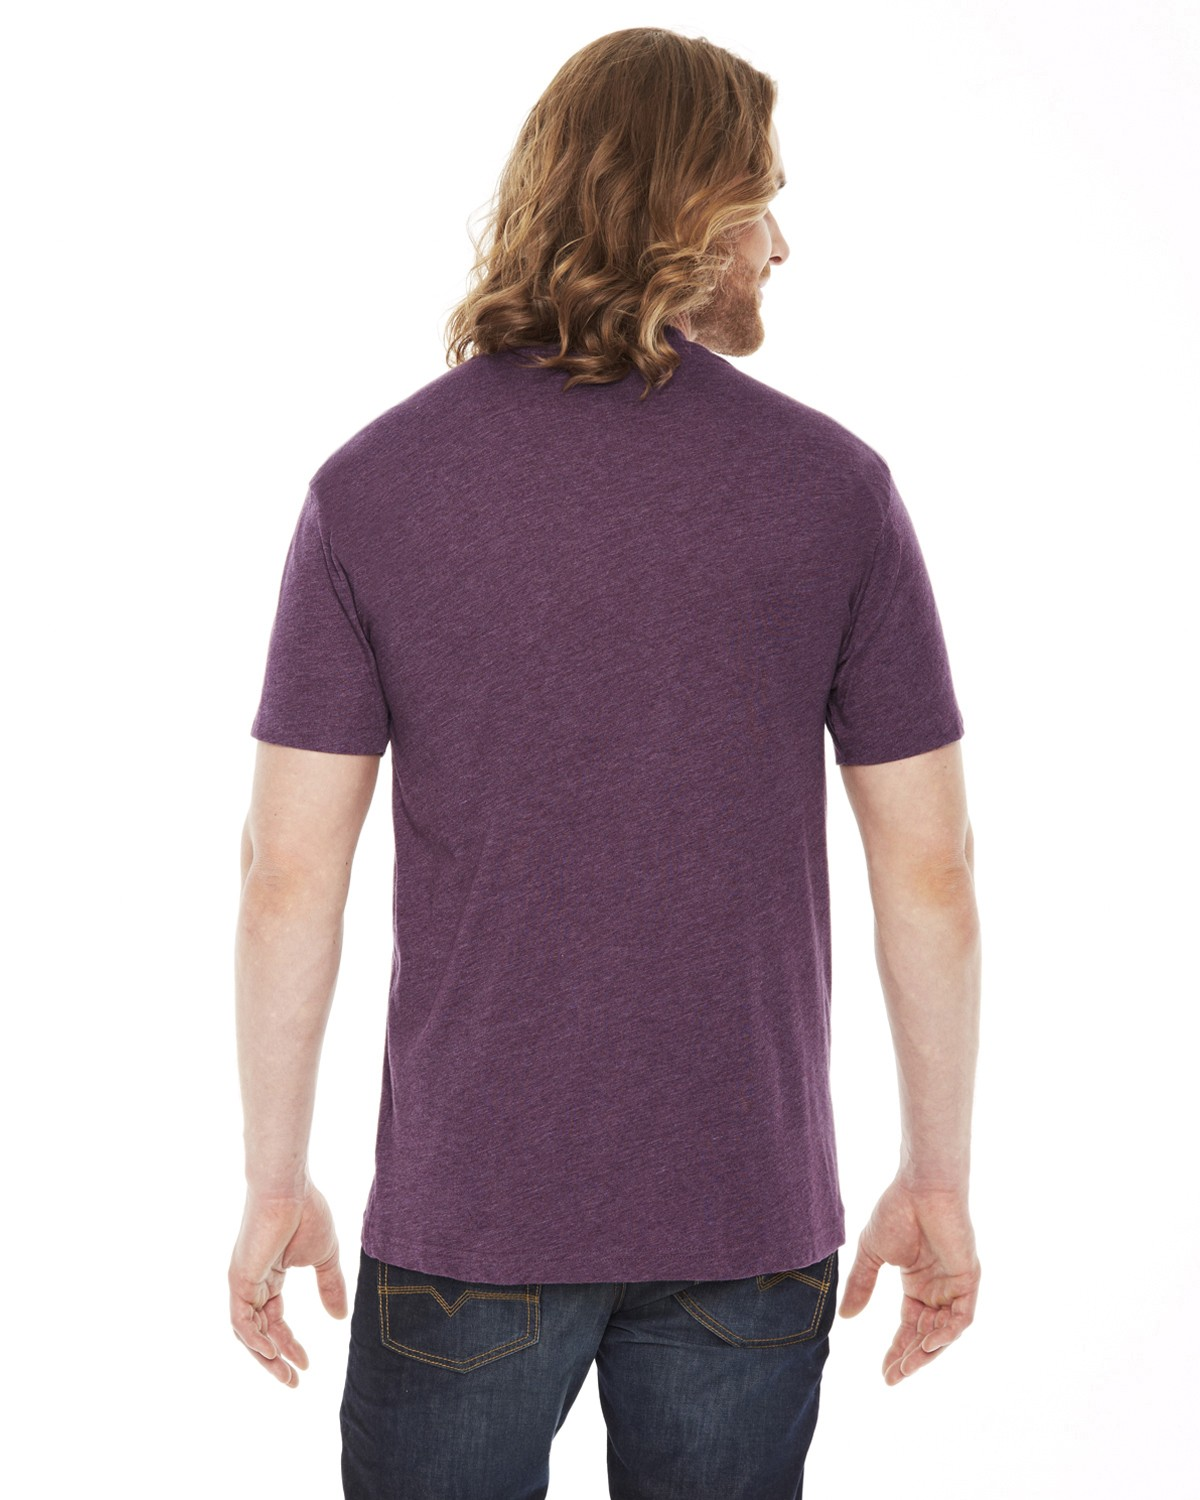 BB401W American Apparel HEATHER PLUM